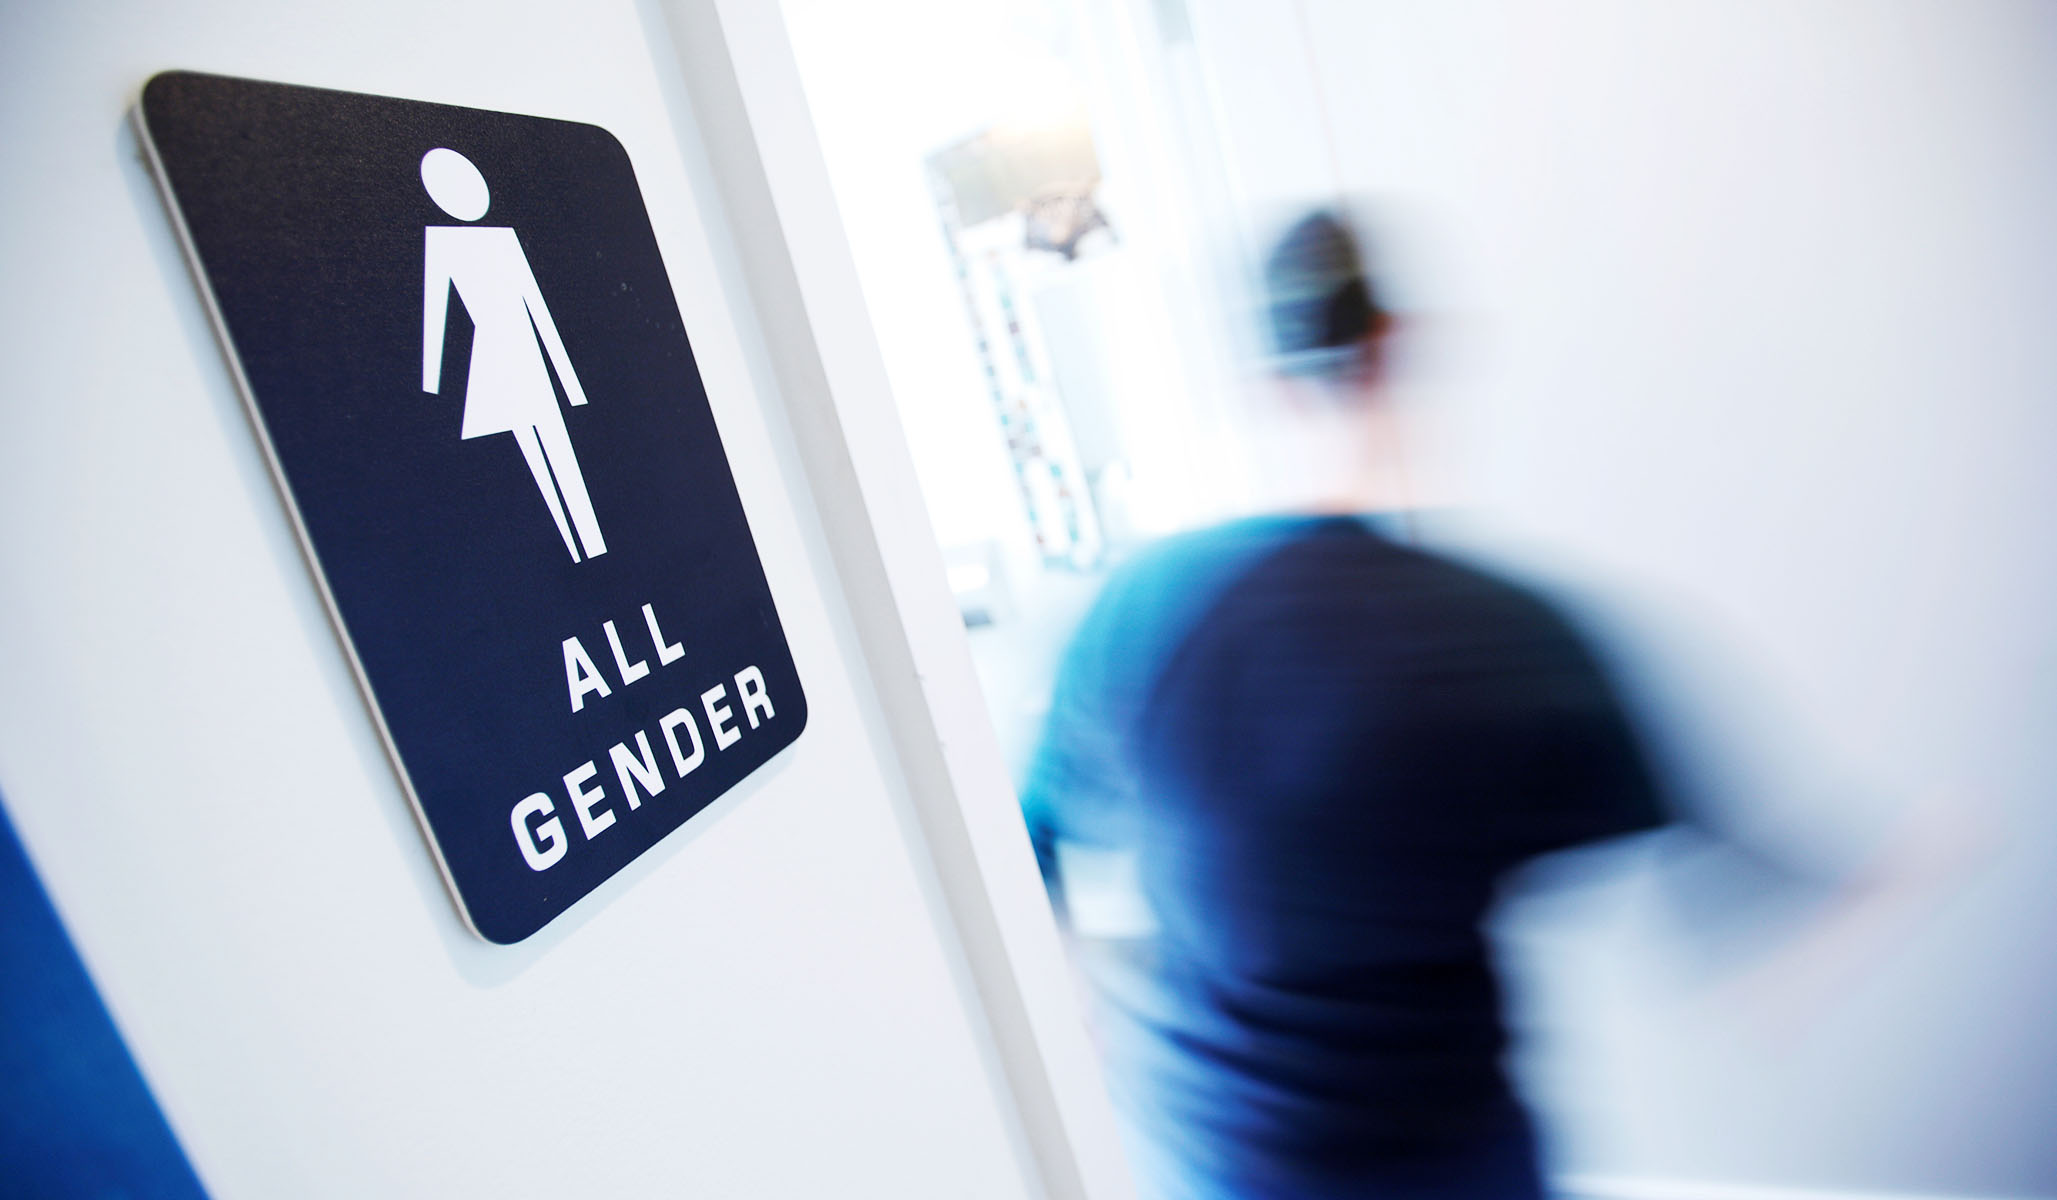 Merriam-Webster Adds Non-Binary Definition of 'They' to Dictionary